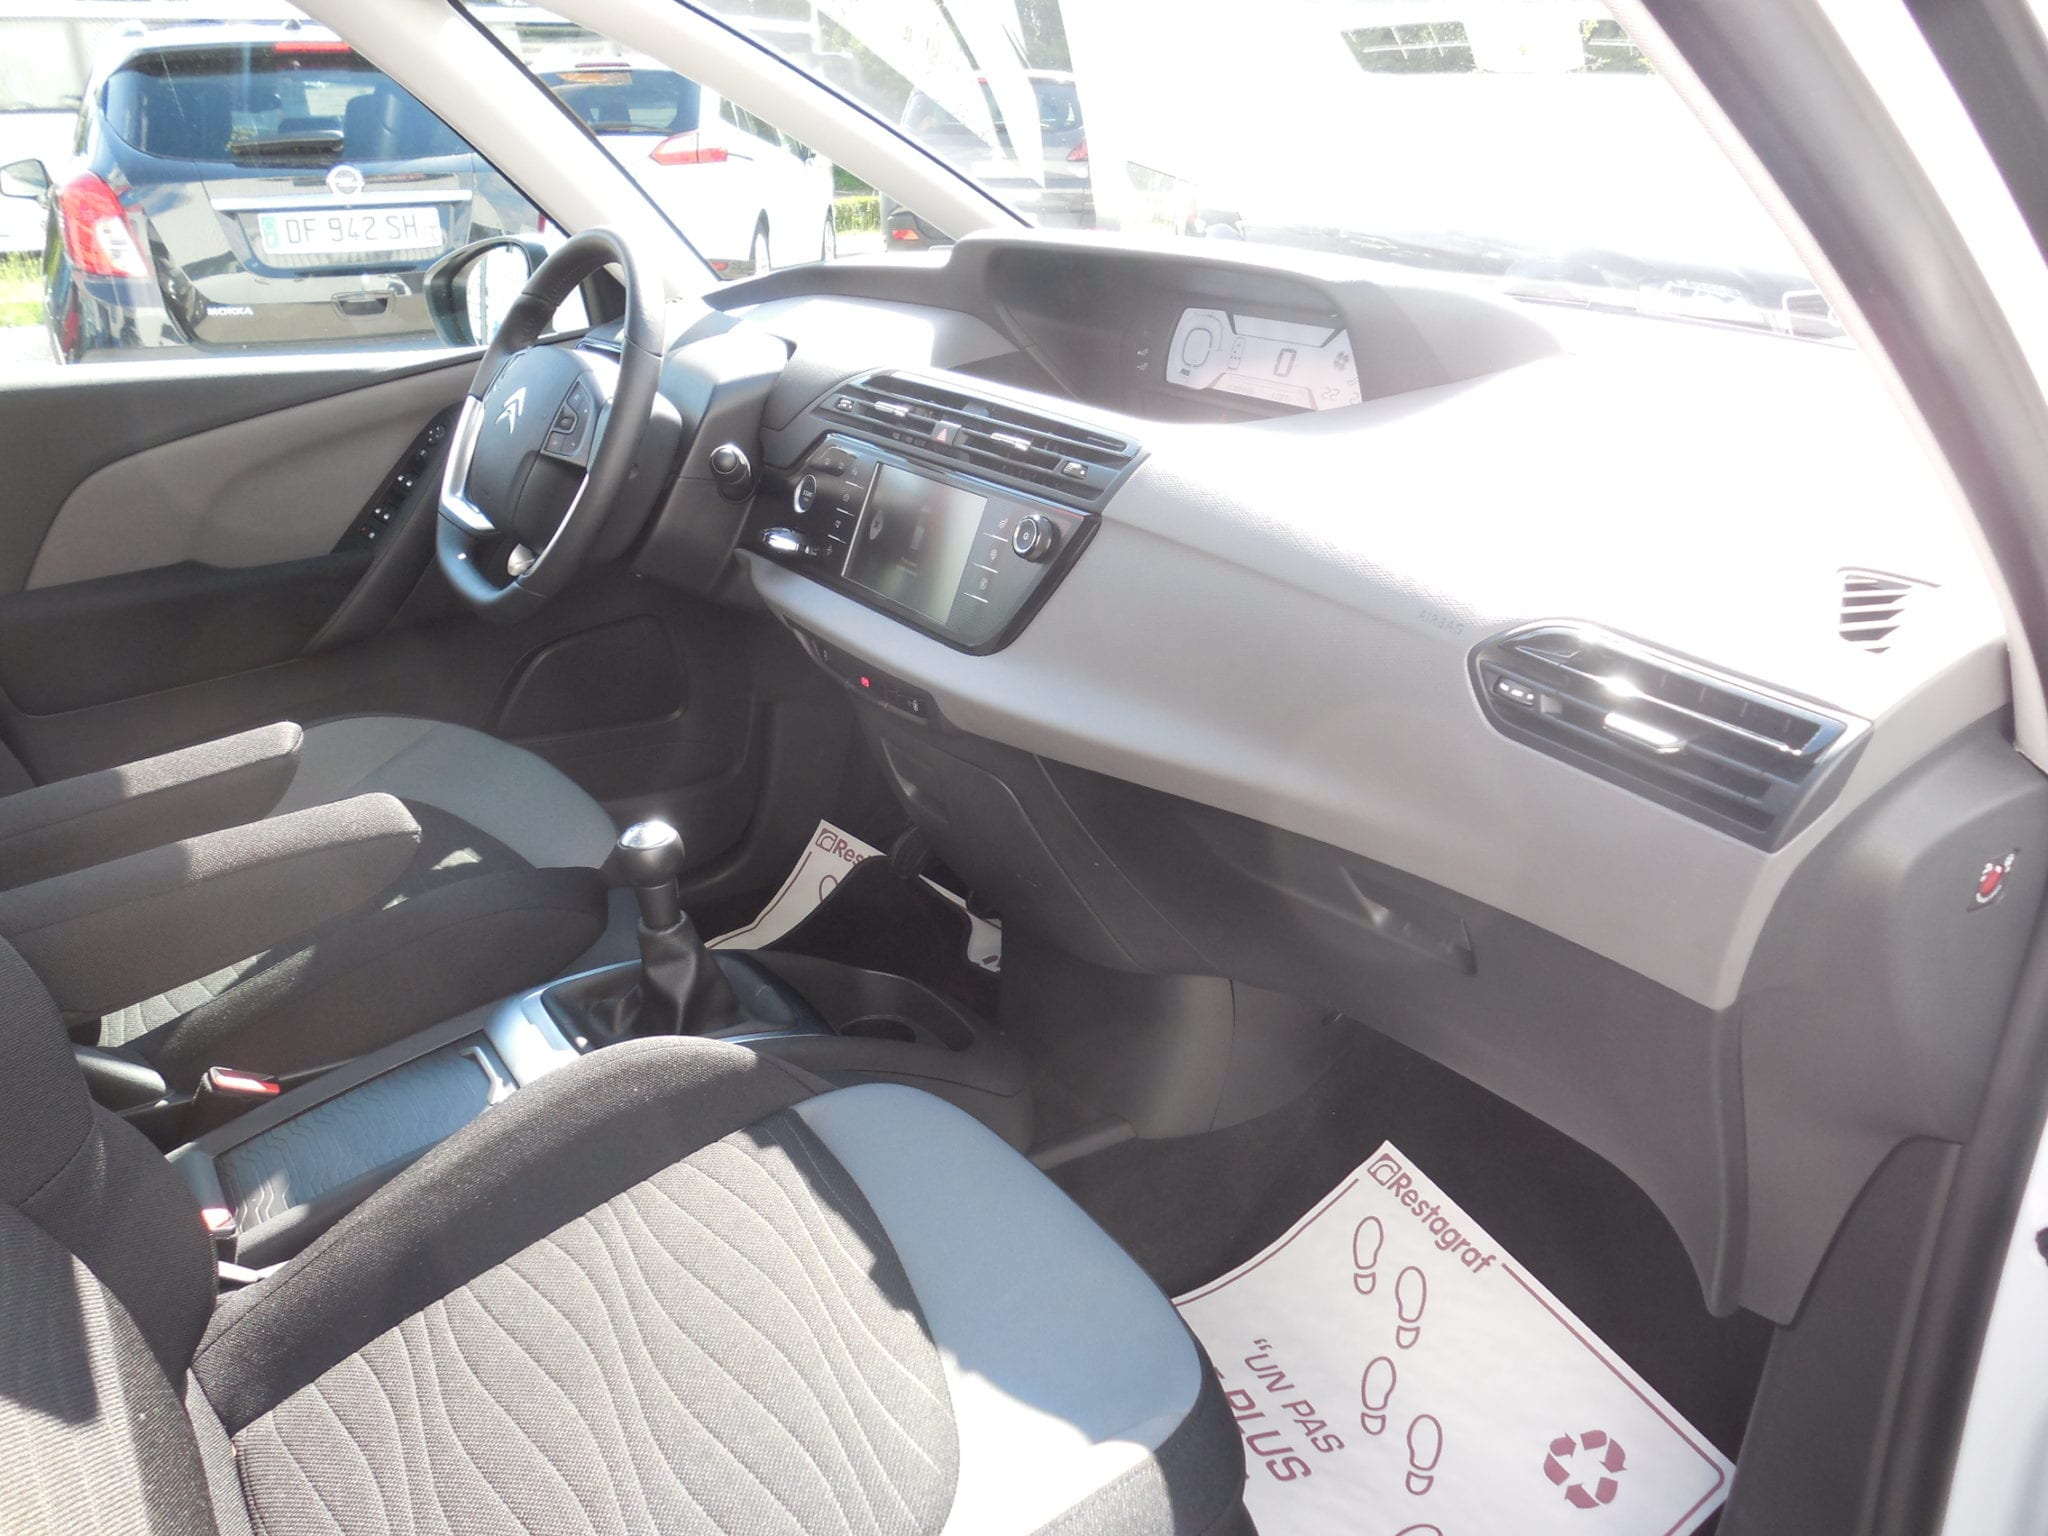 CITROEN C4 Picasso COLLECTION eHDI+OPTIONS 30446 KMS  - Image 3